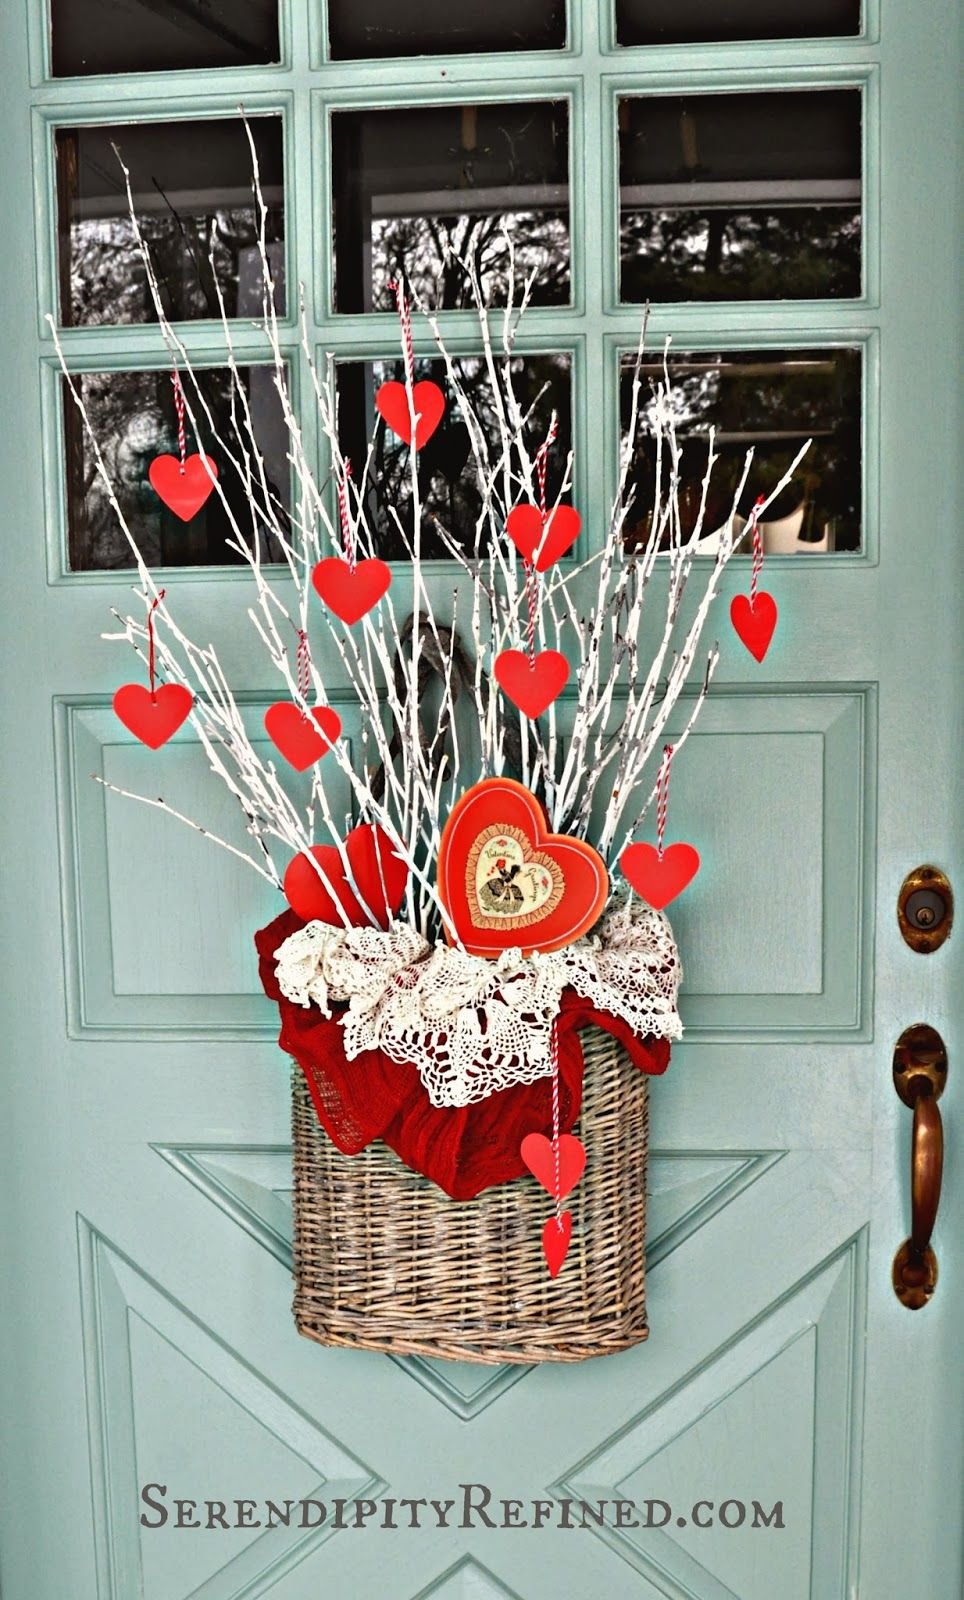 Serendipity Refined Simple Diy Valentines Day Door Decor Diy Valentine S Day Decorations Valentine Door Decorations Valentines Diy